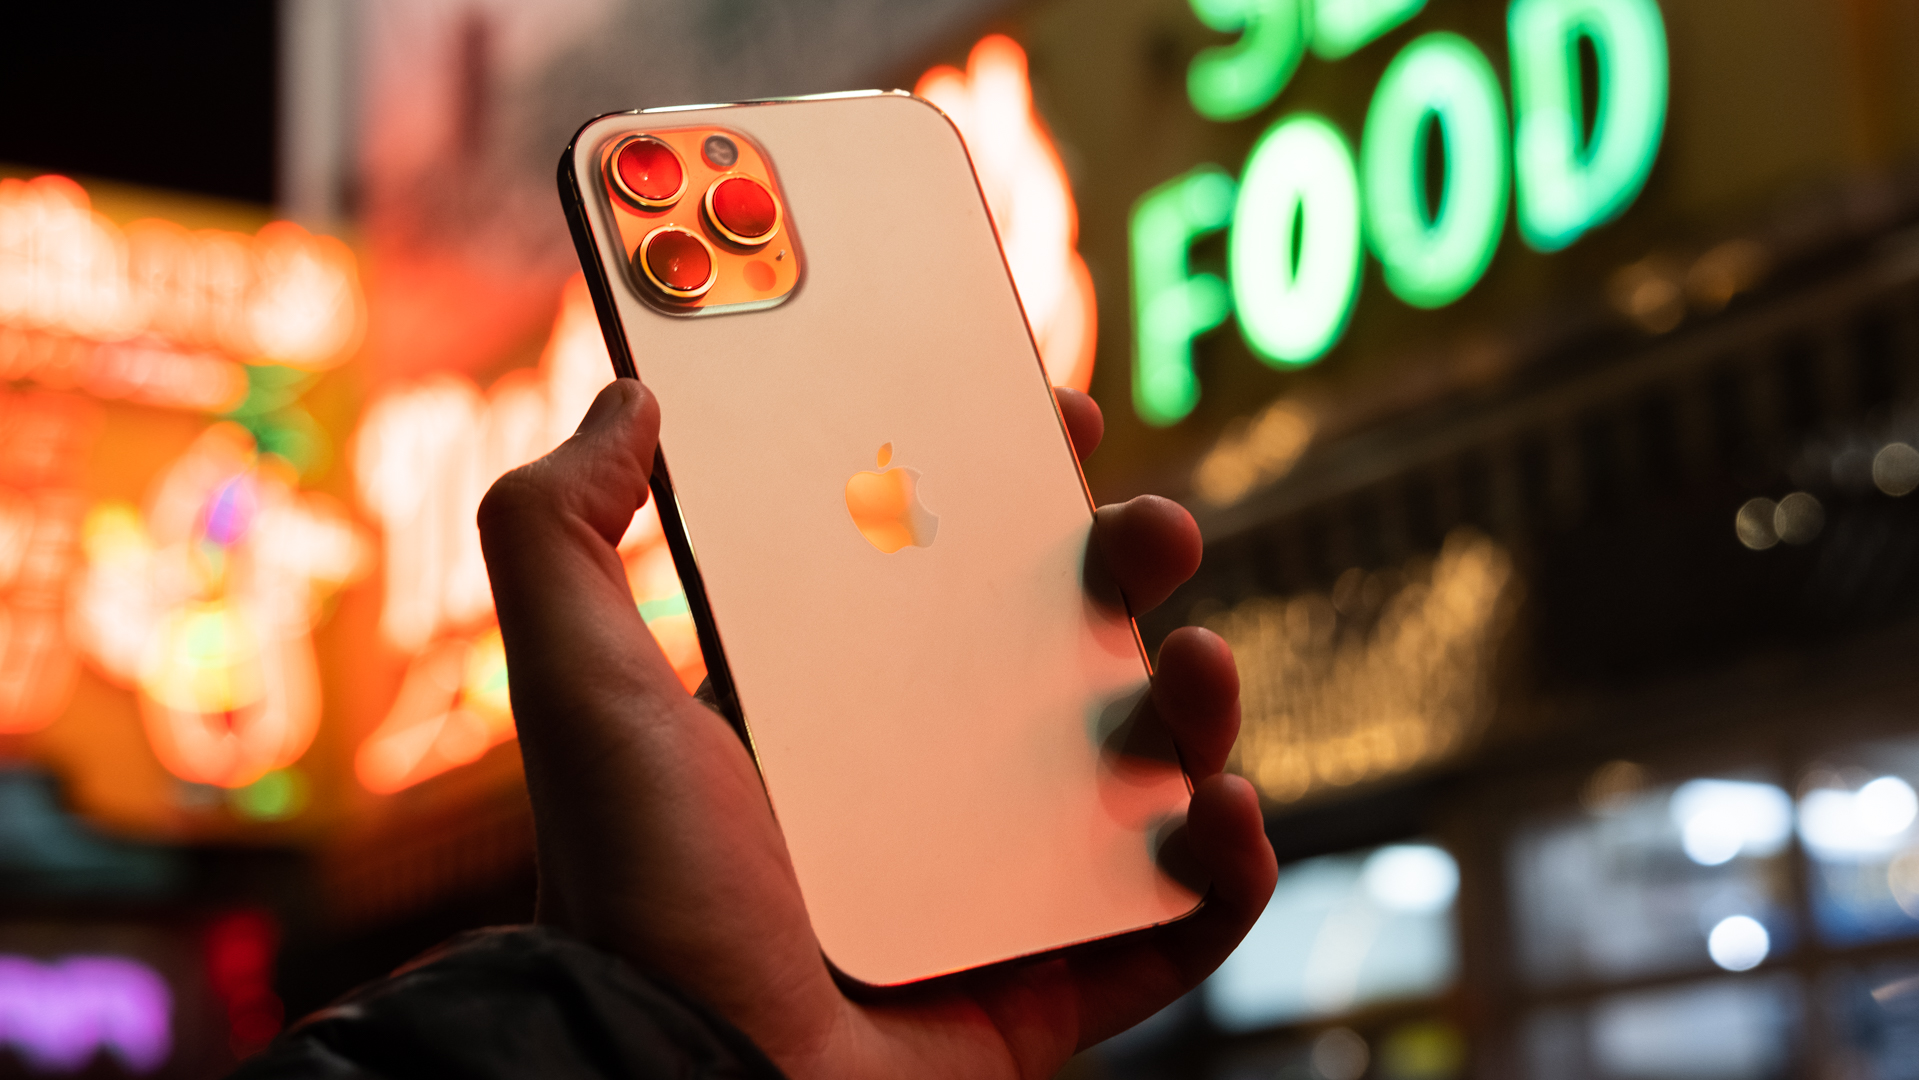 iPhone-12-Pro-Max-back-with-neon-1